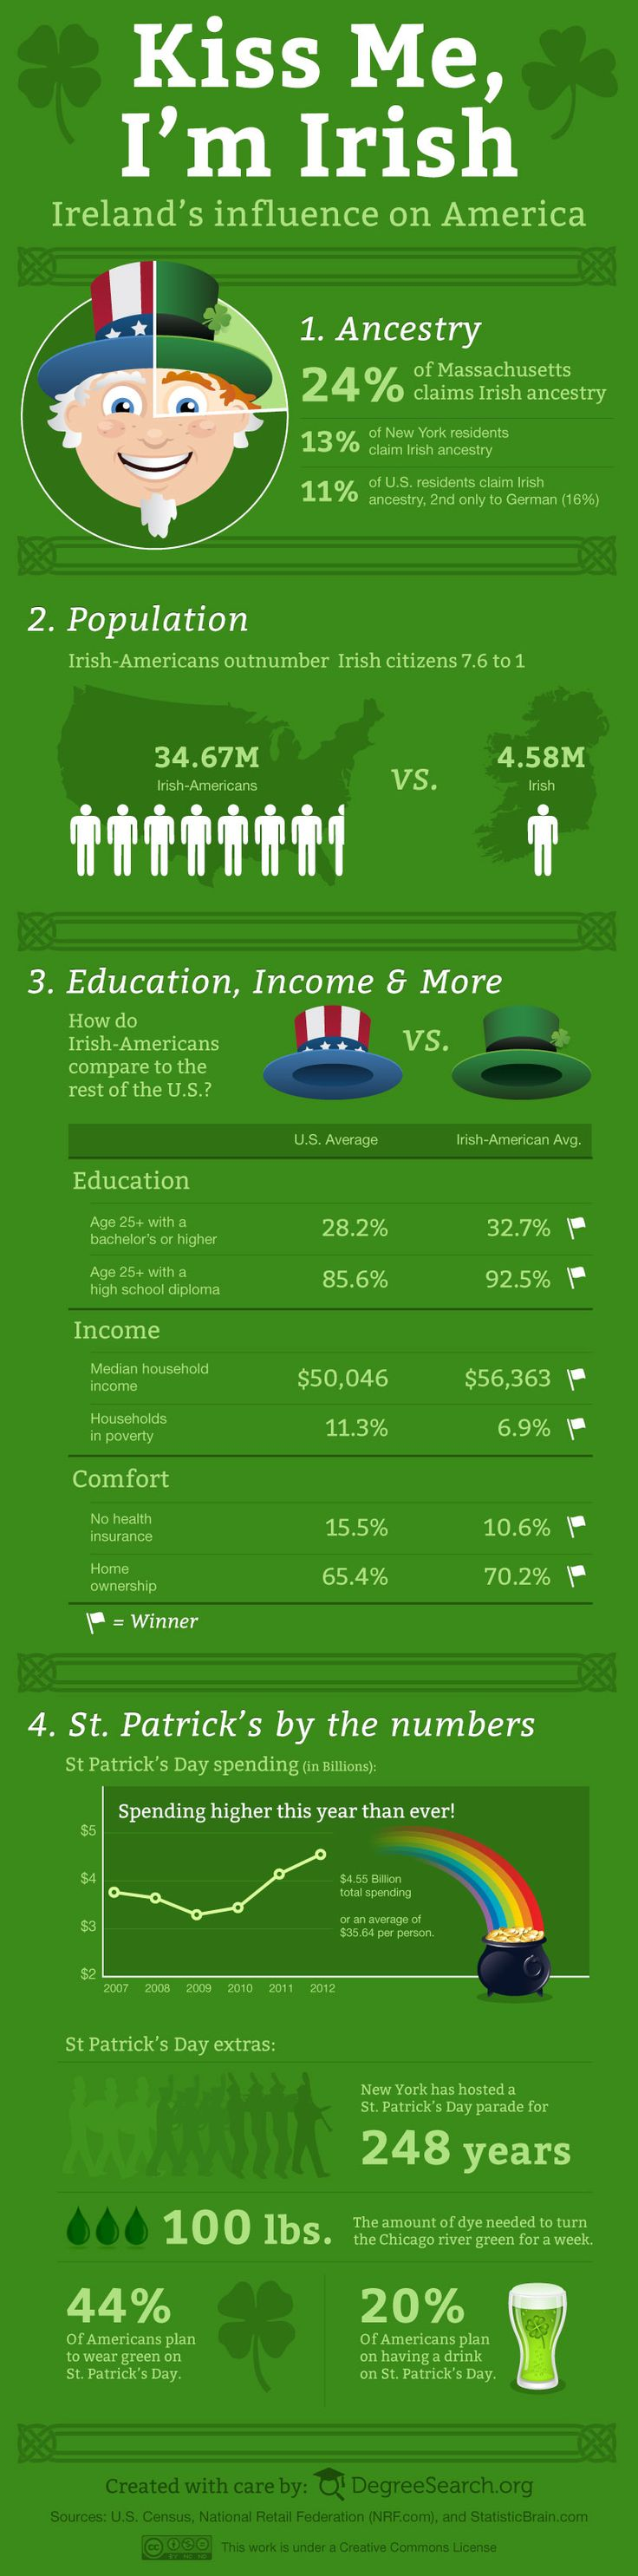 Kiss me, I'm Irish: Ireland's influence on Usa in an #infographic - Happy St Patrick's Day :)